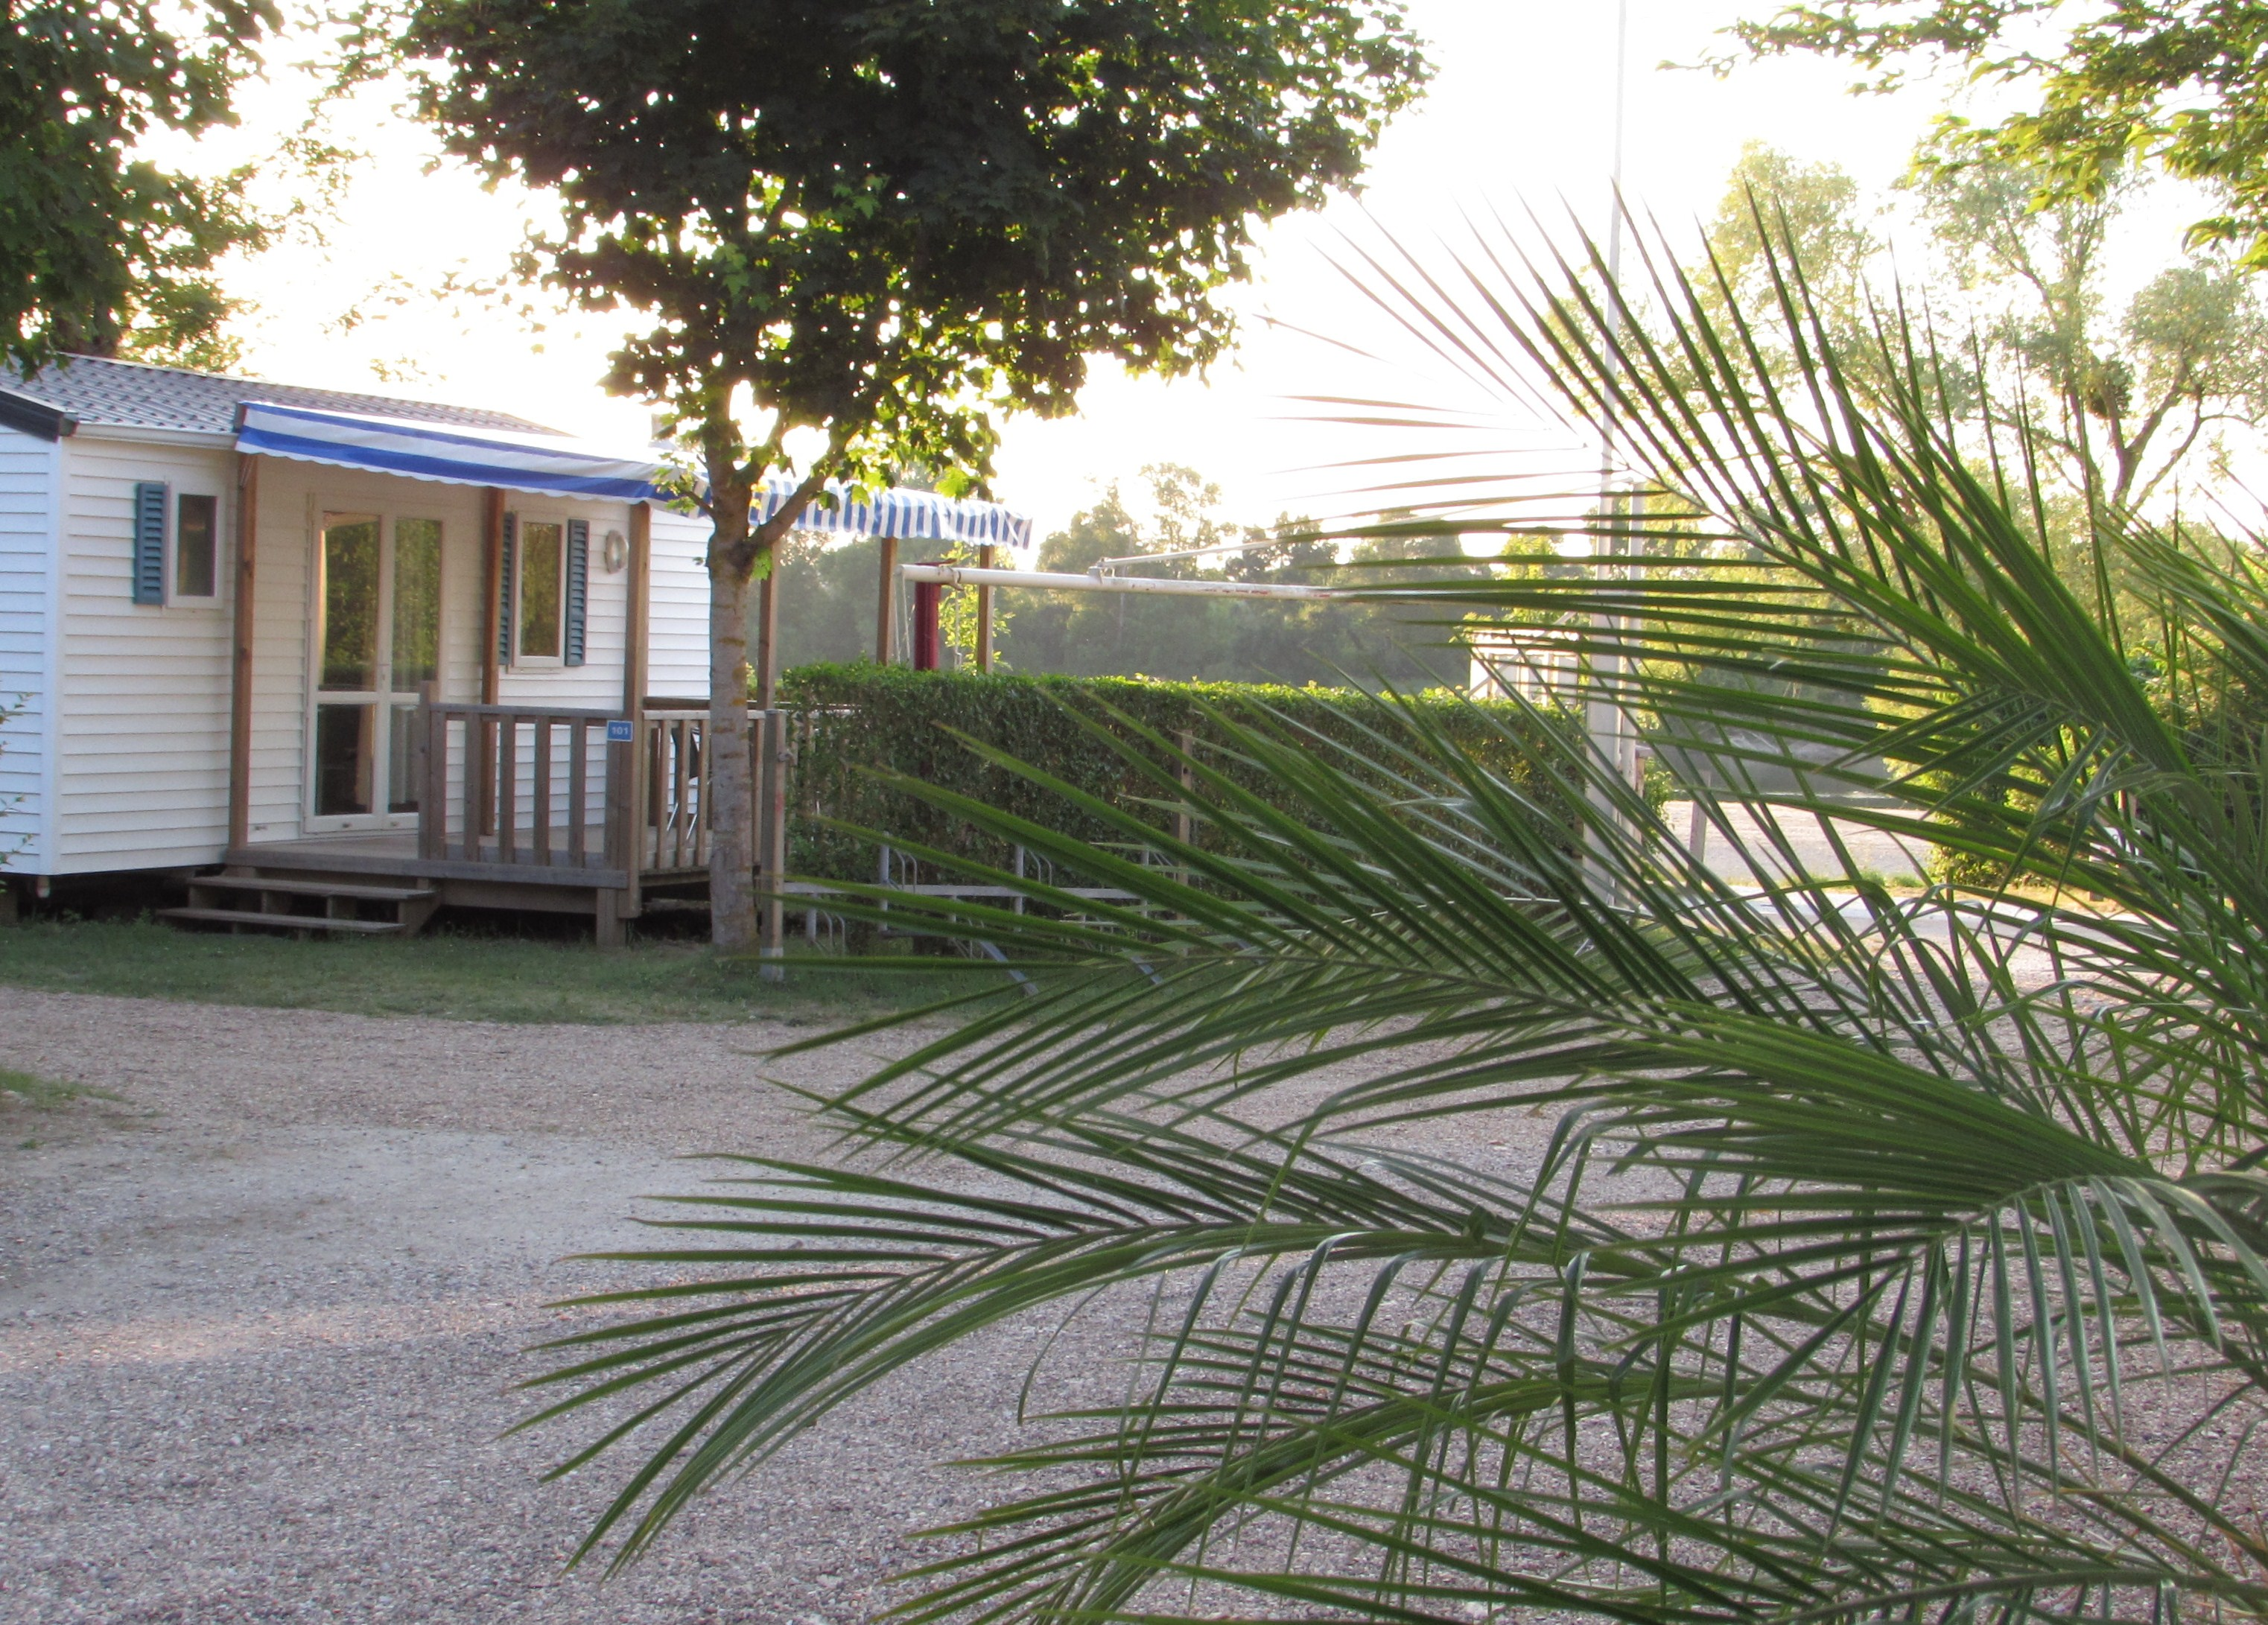 Family campsite with Loire view